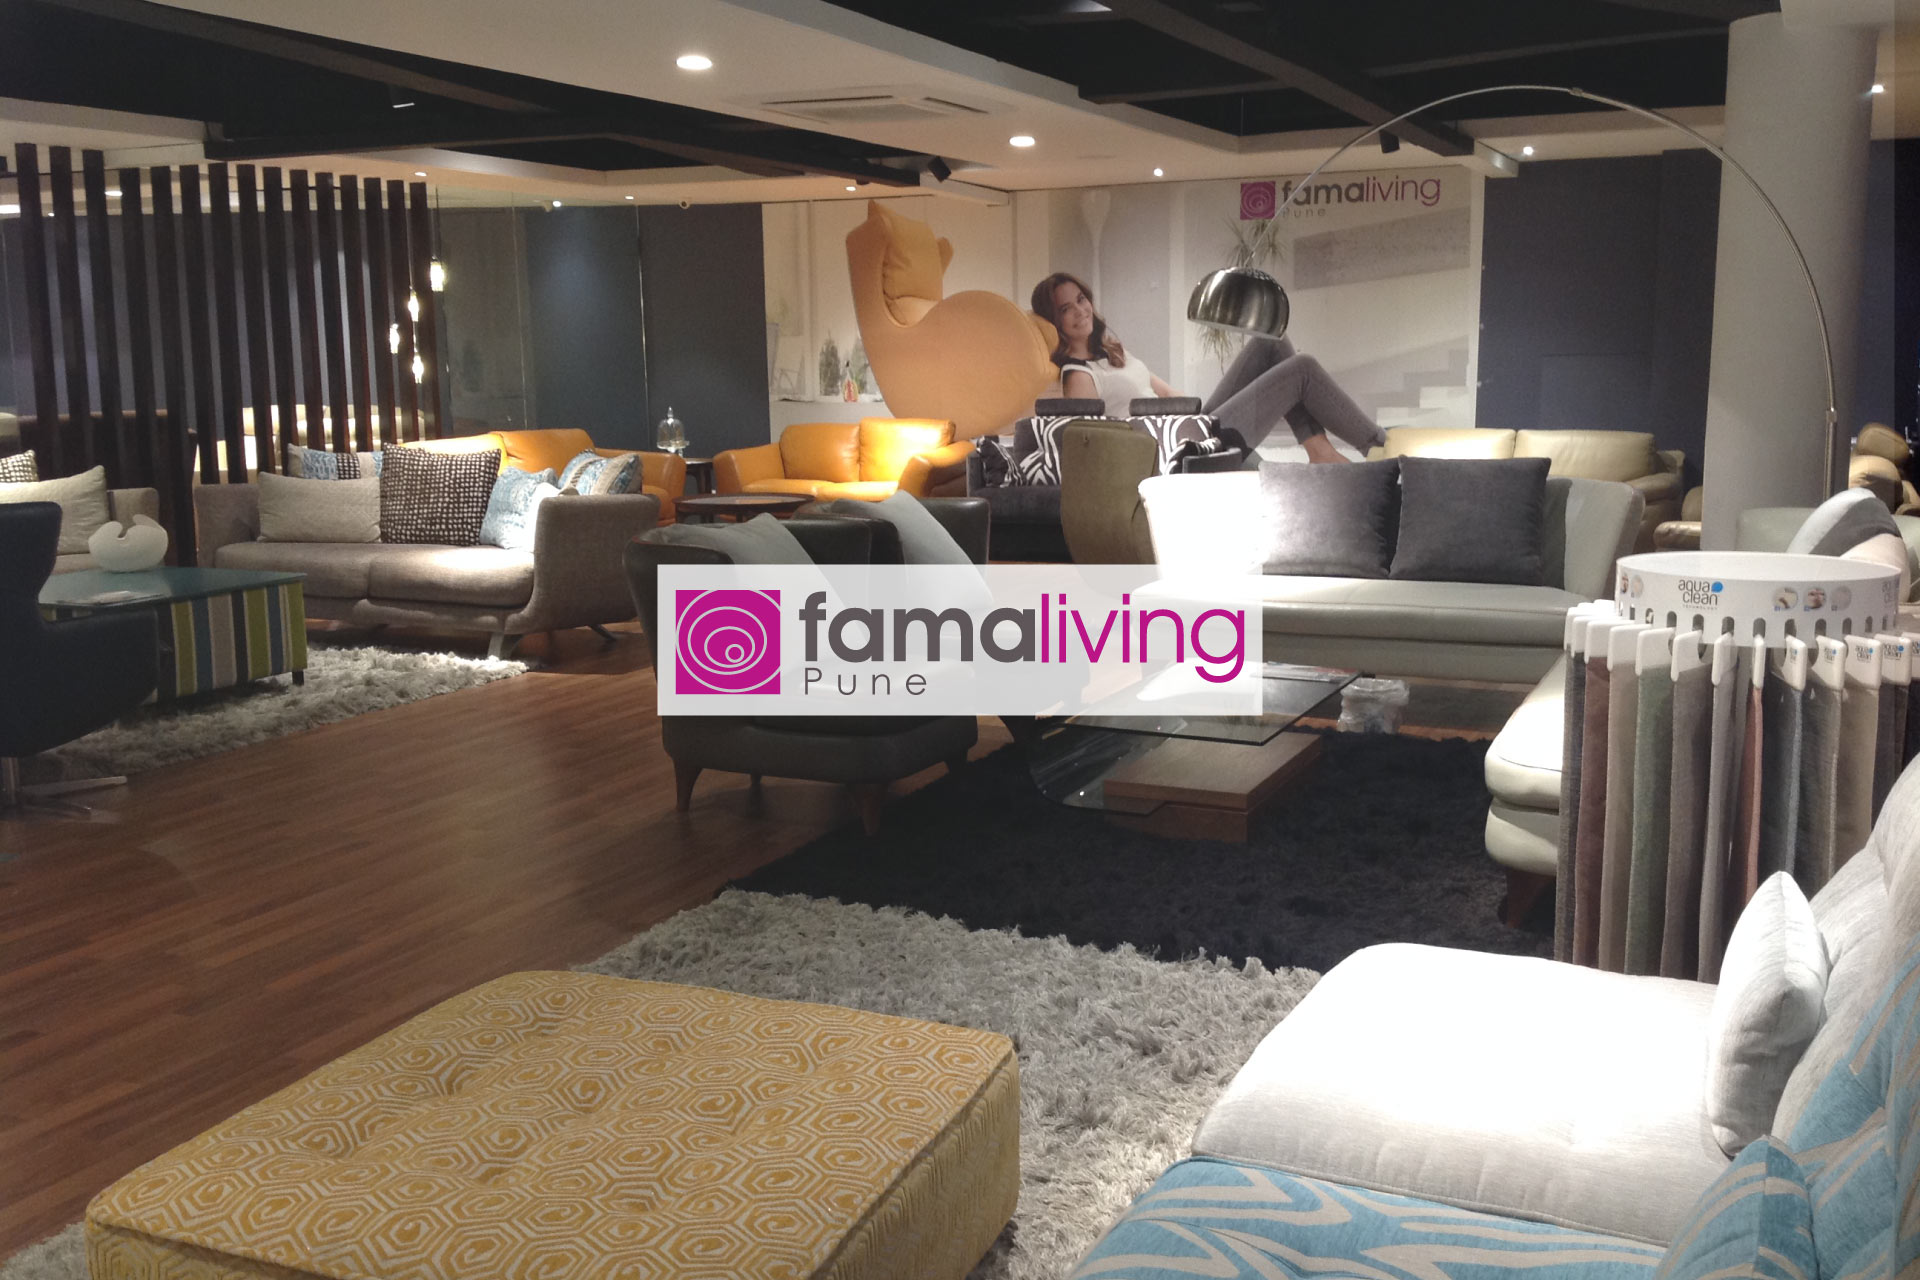 https://www.famaliving.com/pune-en